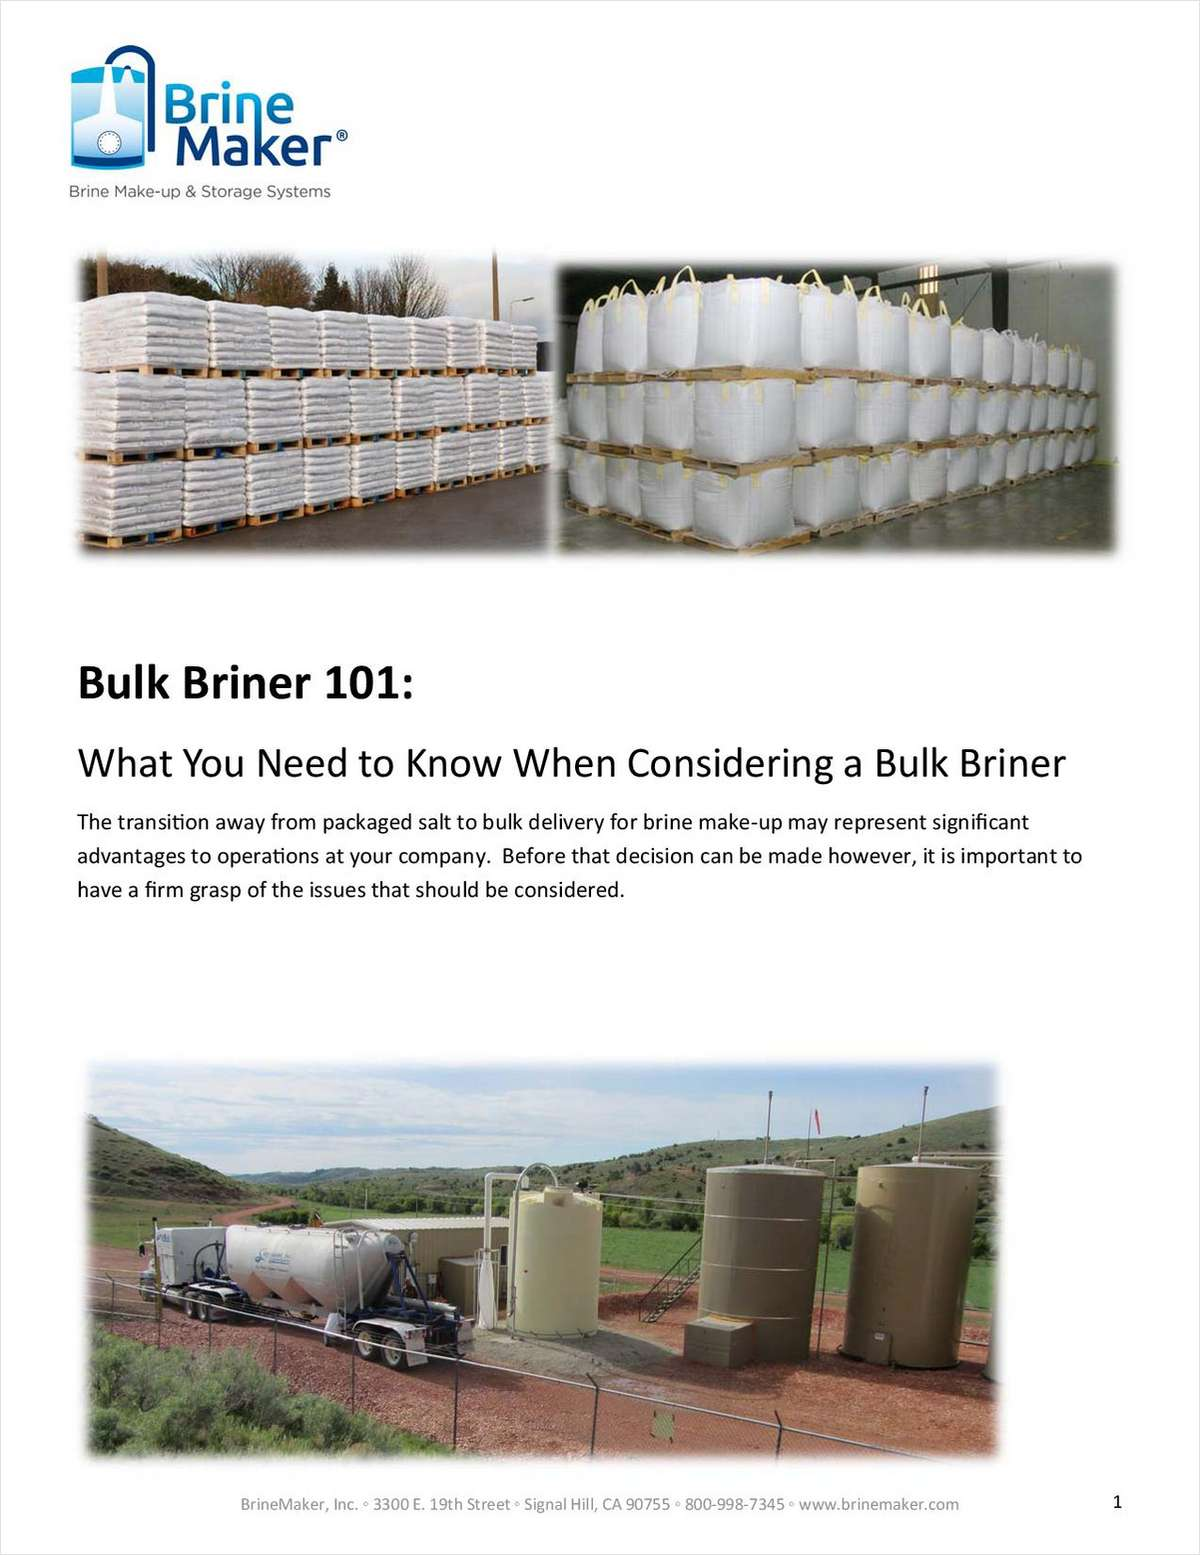 Bulk Briner 101: What You Need to Know When Considering a Bulk Briner